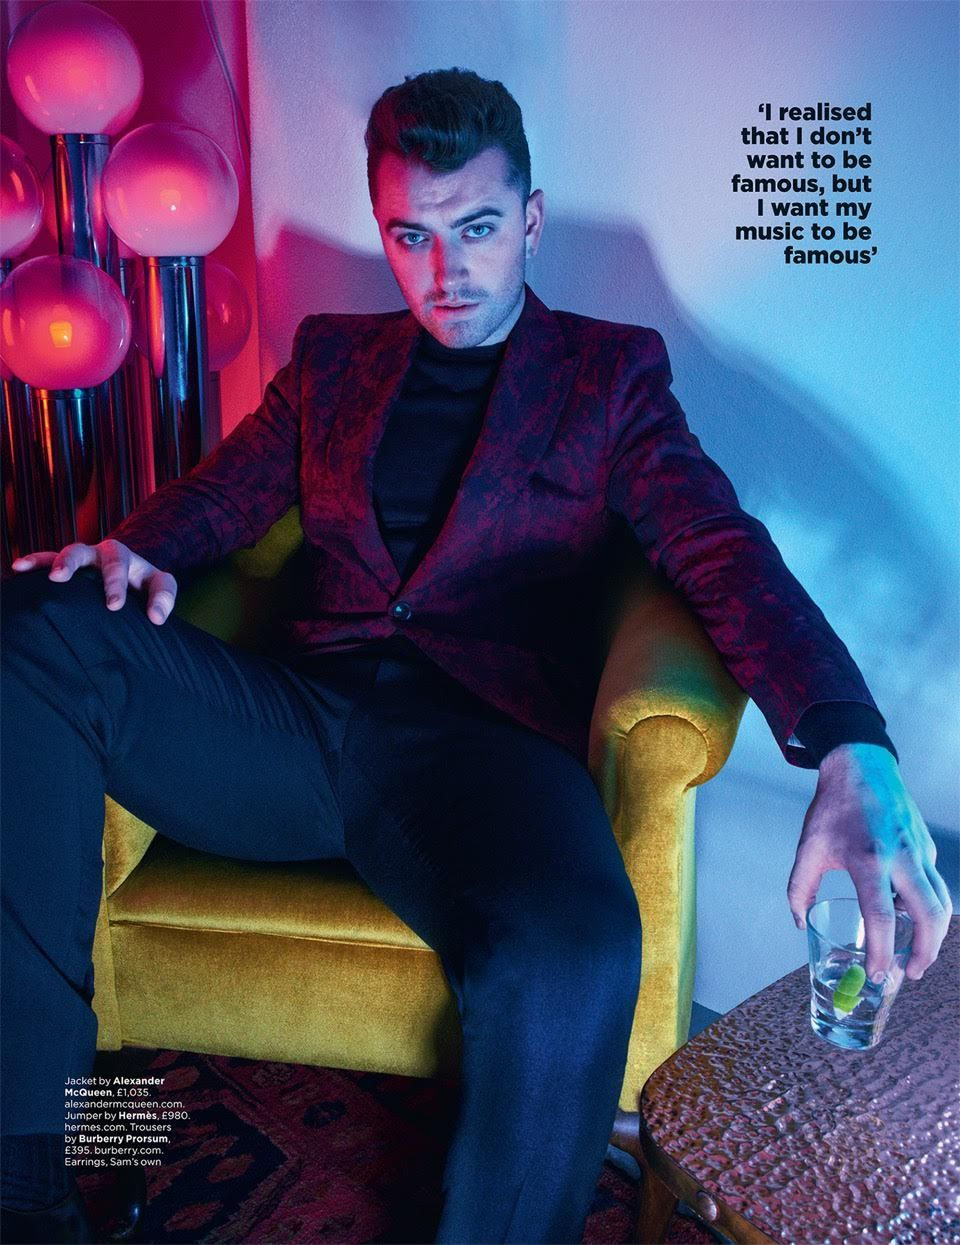 dc5760ca102a14 After great weight loss, Sam Smith cuts a sharp figure in the October 2015  issue of British GQ. The magazine's Solo Artist of the Year, Smith hits the  stud